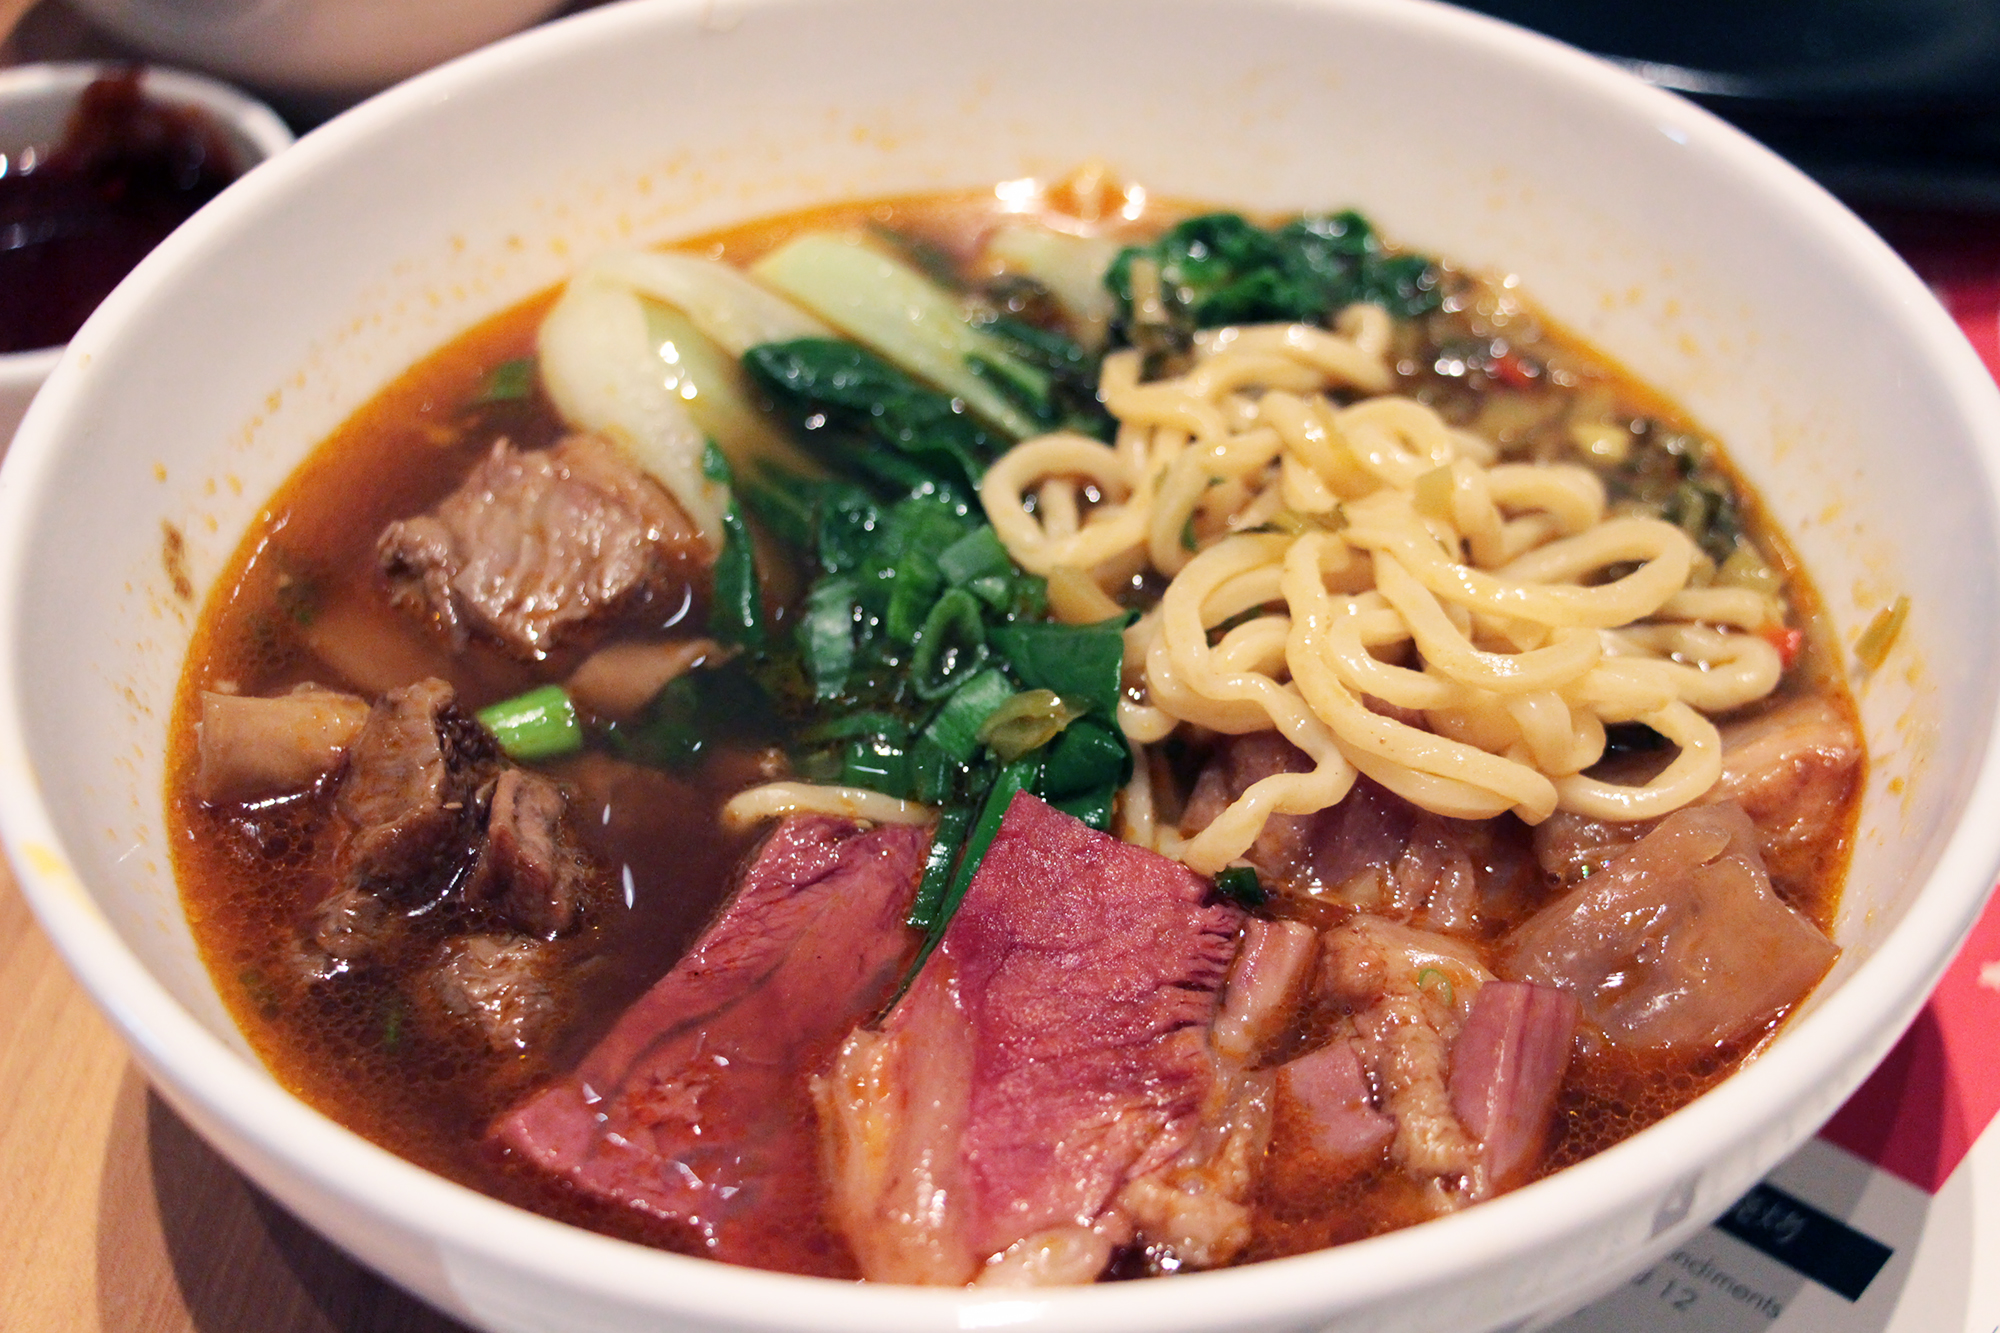 Taipei Braised Beef Noodle Soup - Brisket/Tendon, Red Broth at China Live.